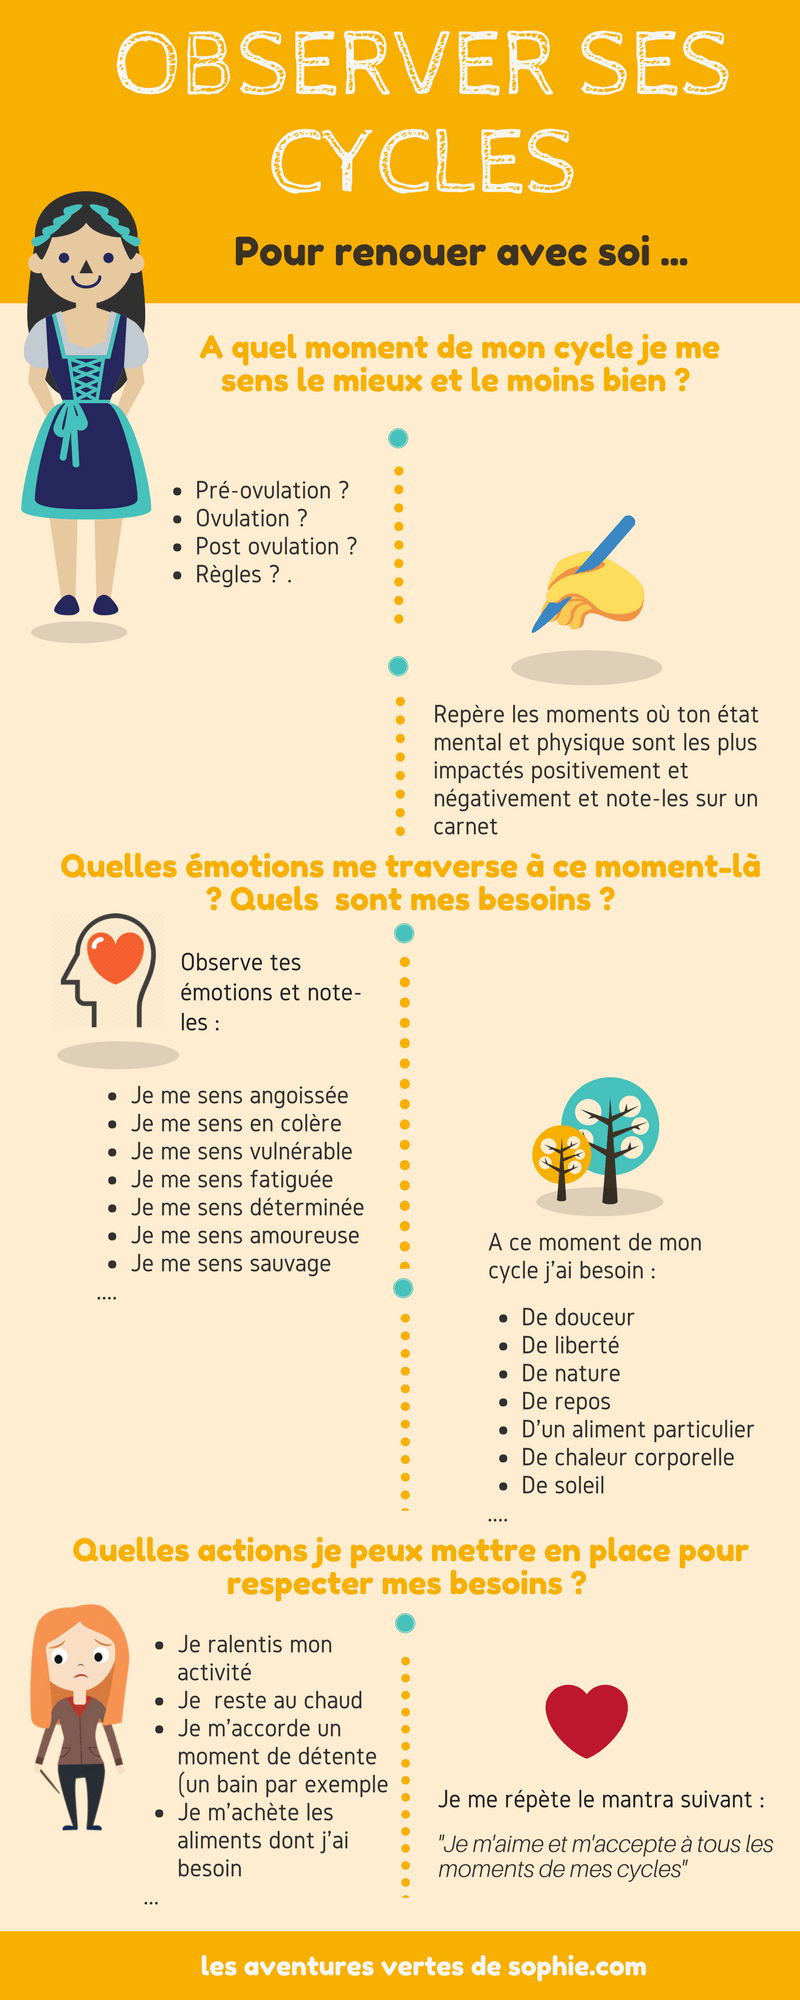 Observer ses cycles (1)